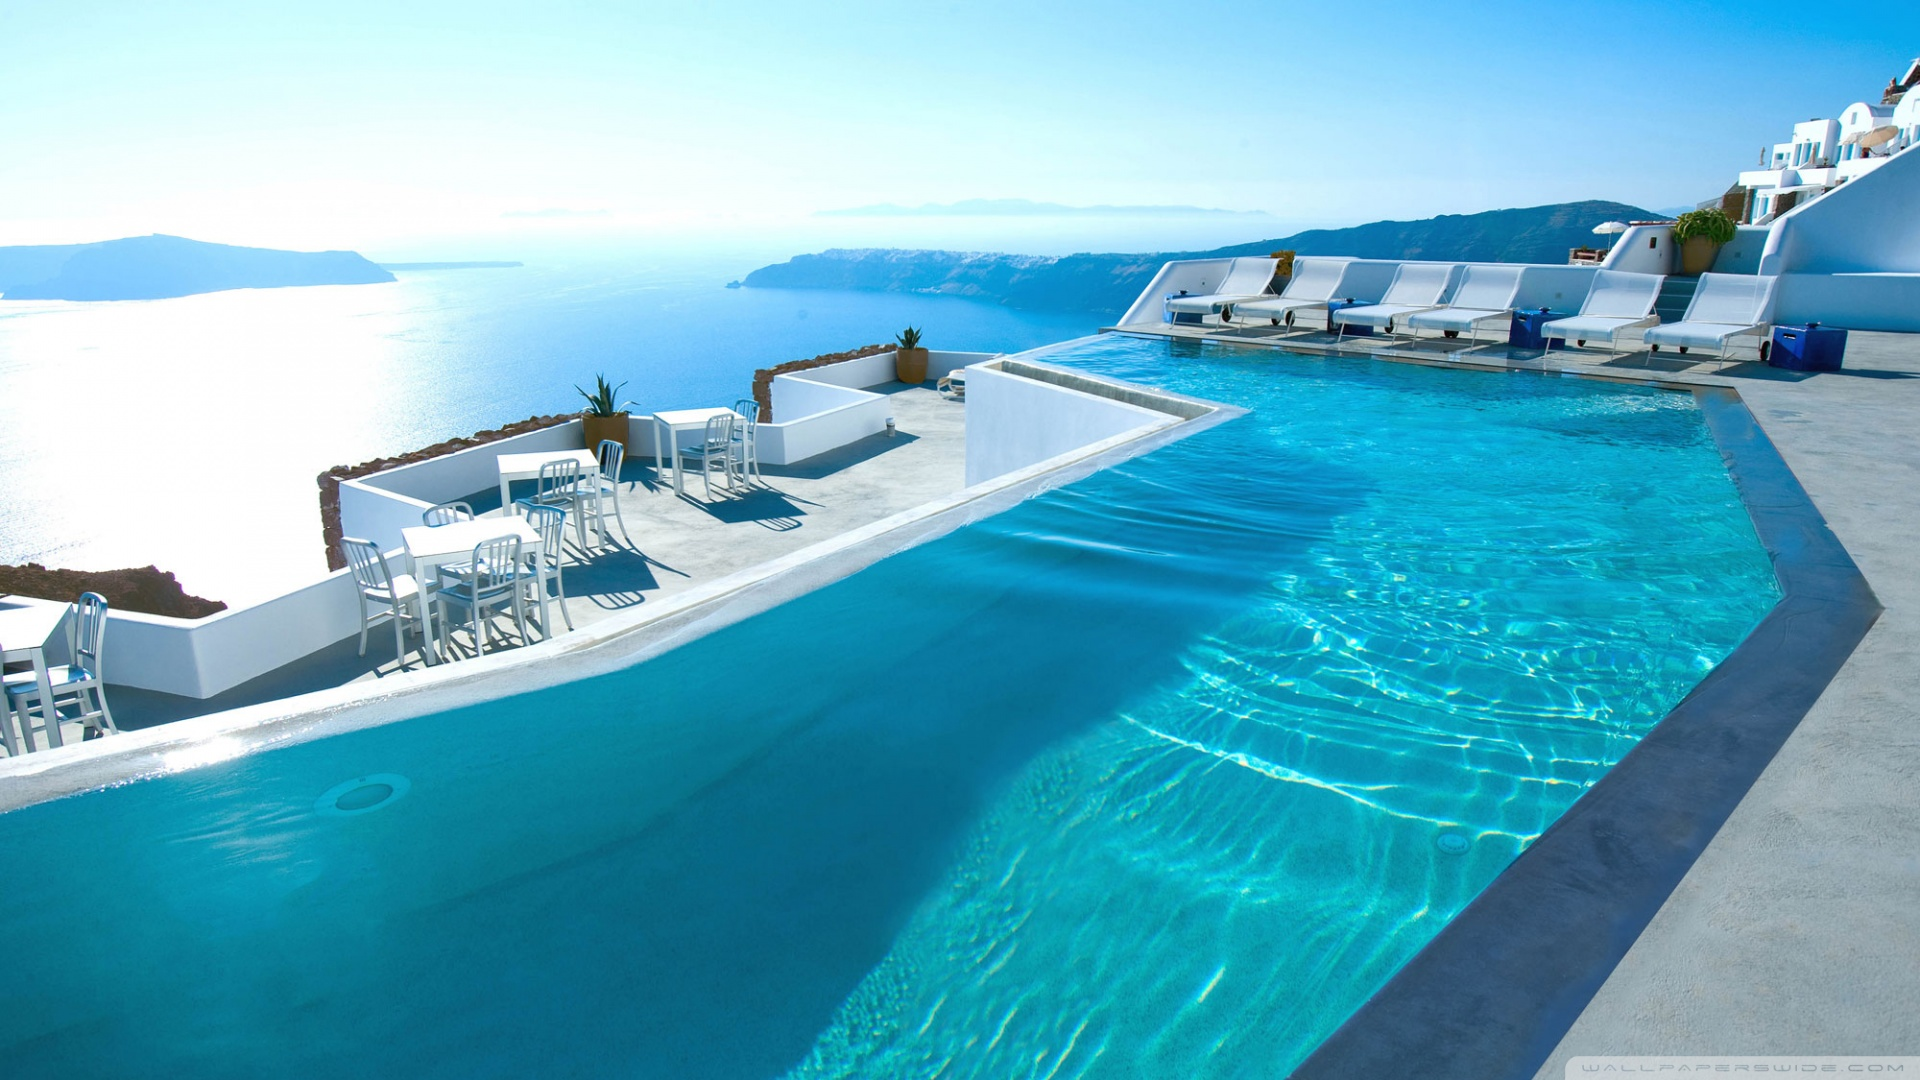 Santorini Hotel 4K HD Desktop Wallpaper for 4K Ultra HD TV 1920x1080